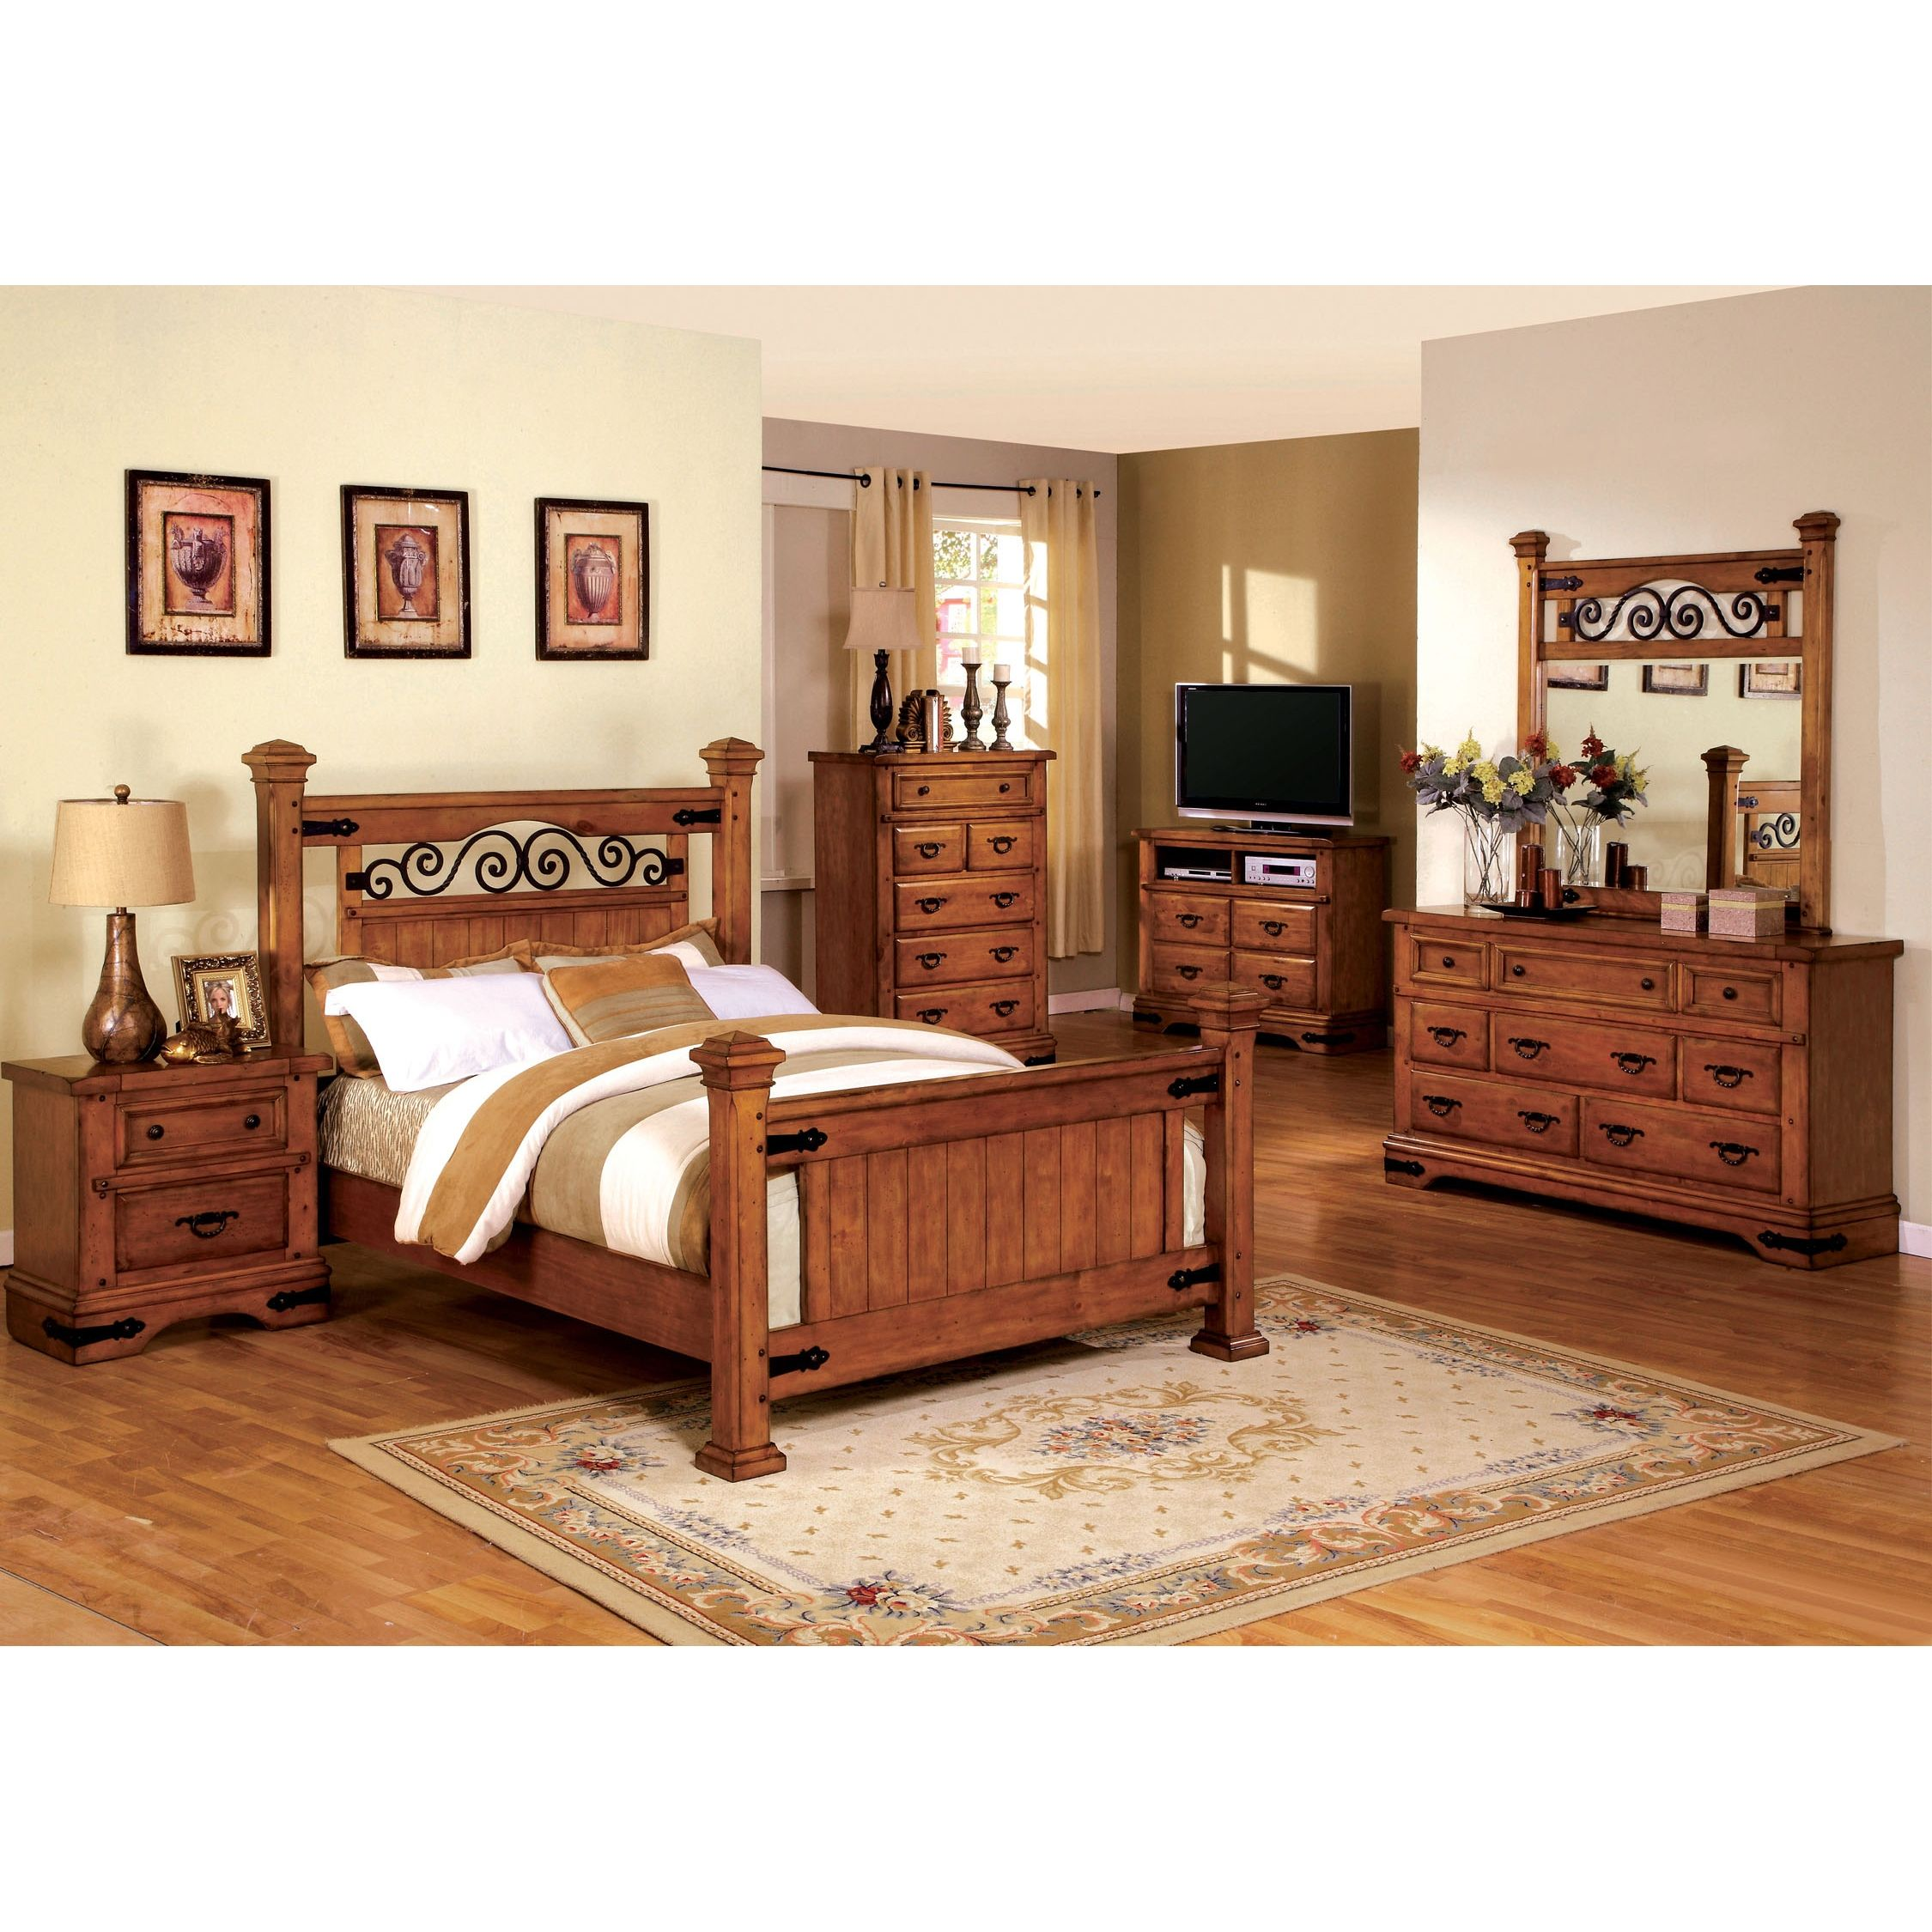 Country style bedroom furniture sets bedroom decor pinterest